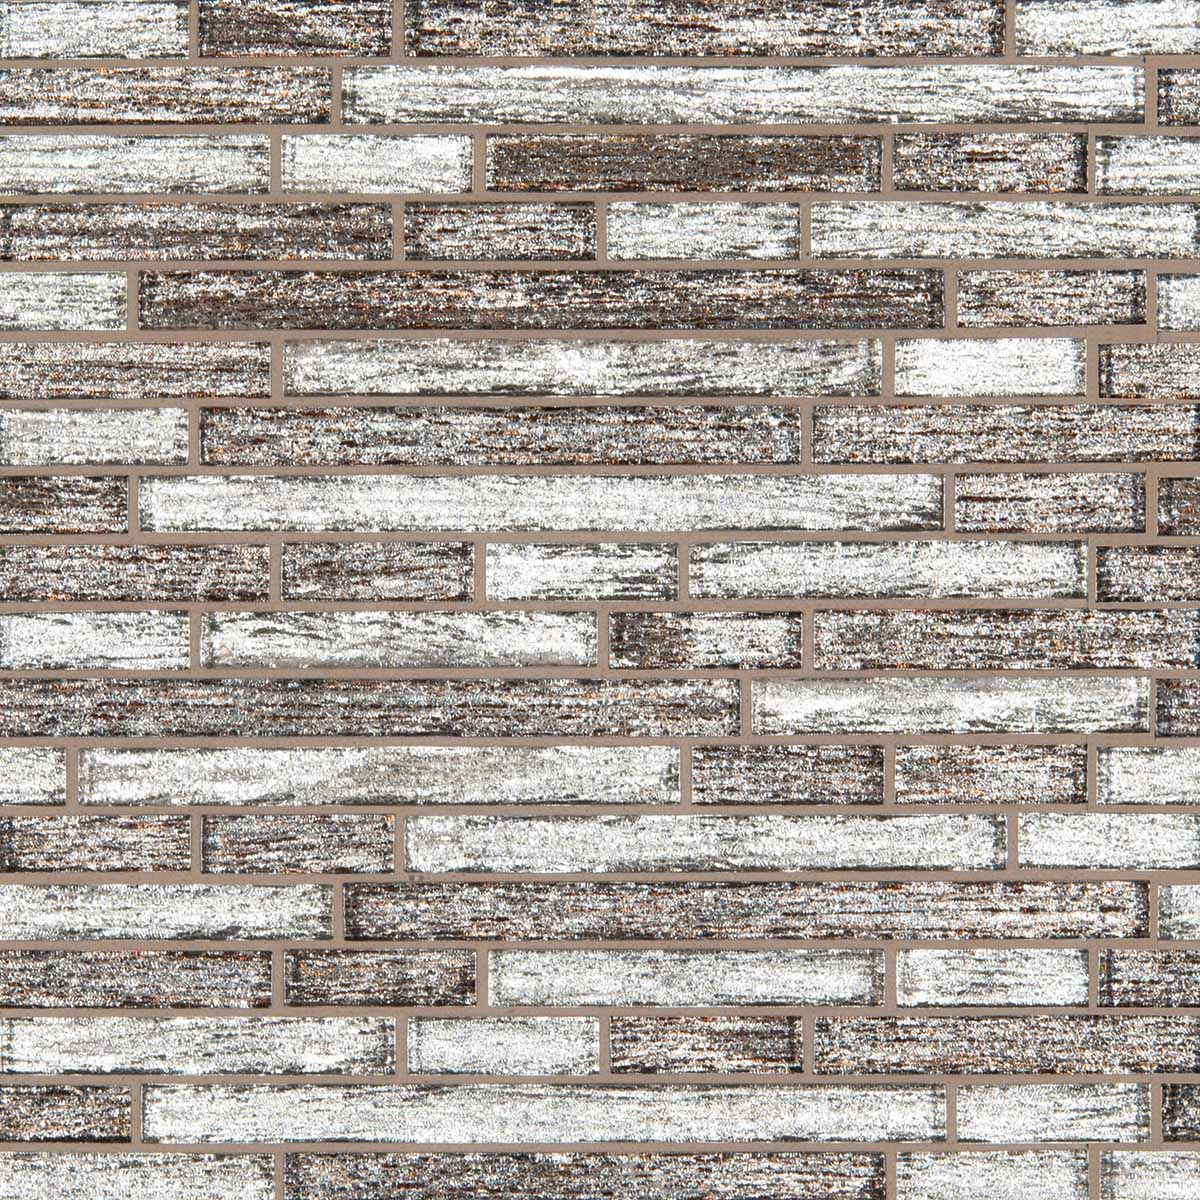 Decorative Stone Wall Tiles Unexpected Materials Enchanting Shapes And Reimagined Color